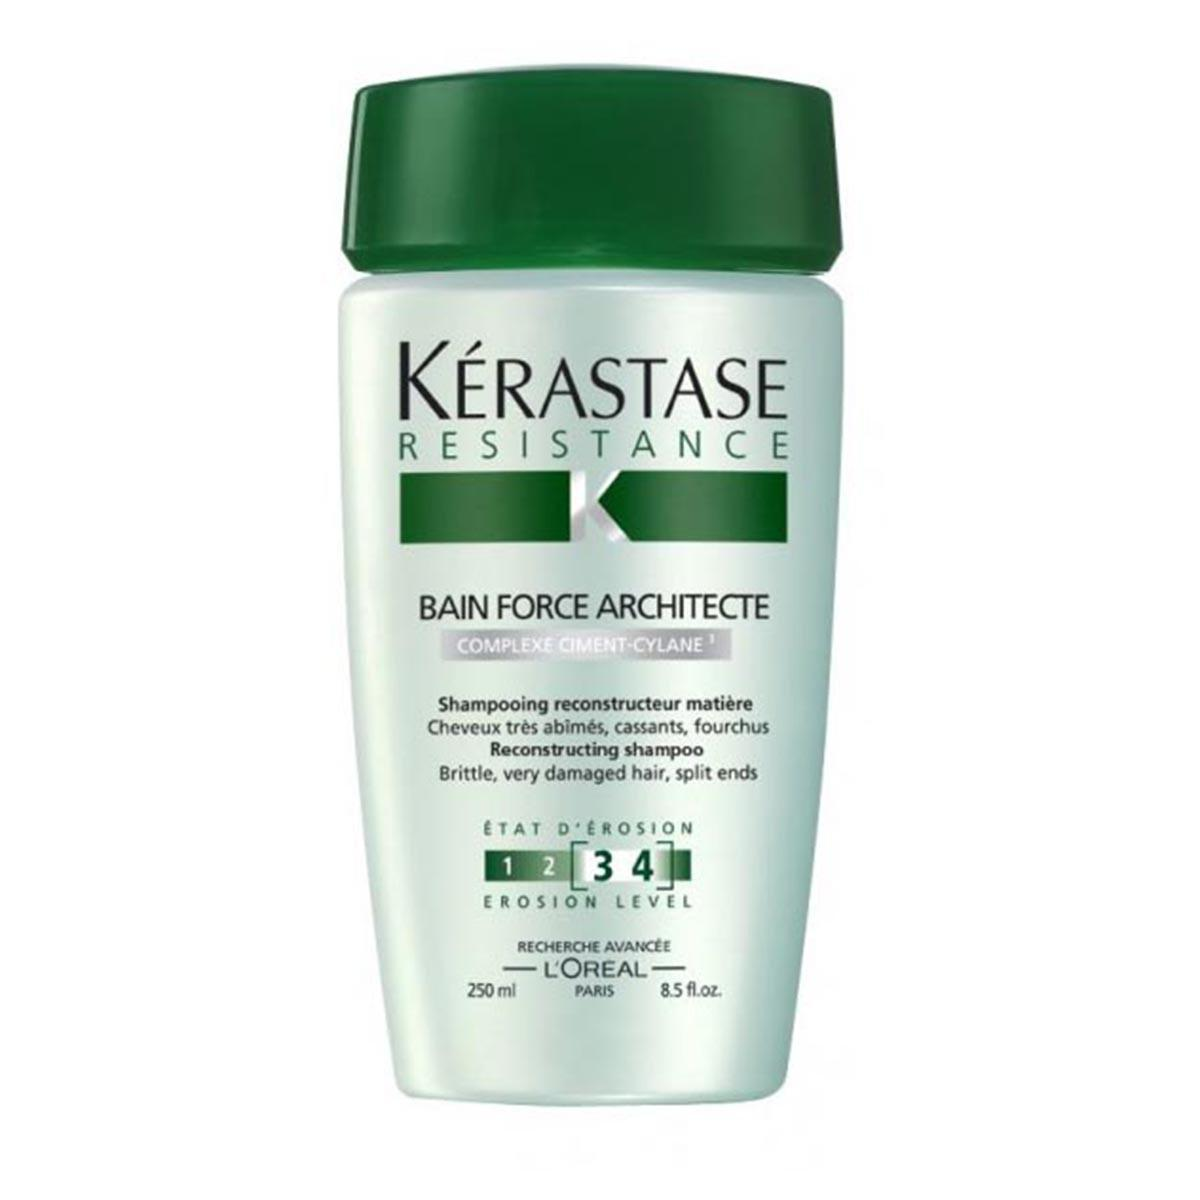 Kerastase fragrances Bain De Force Architecte 250ml